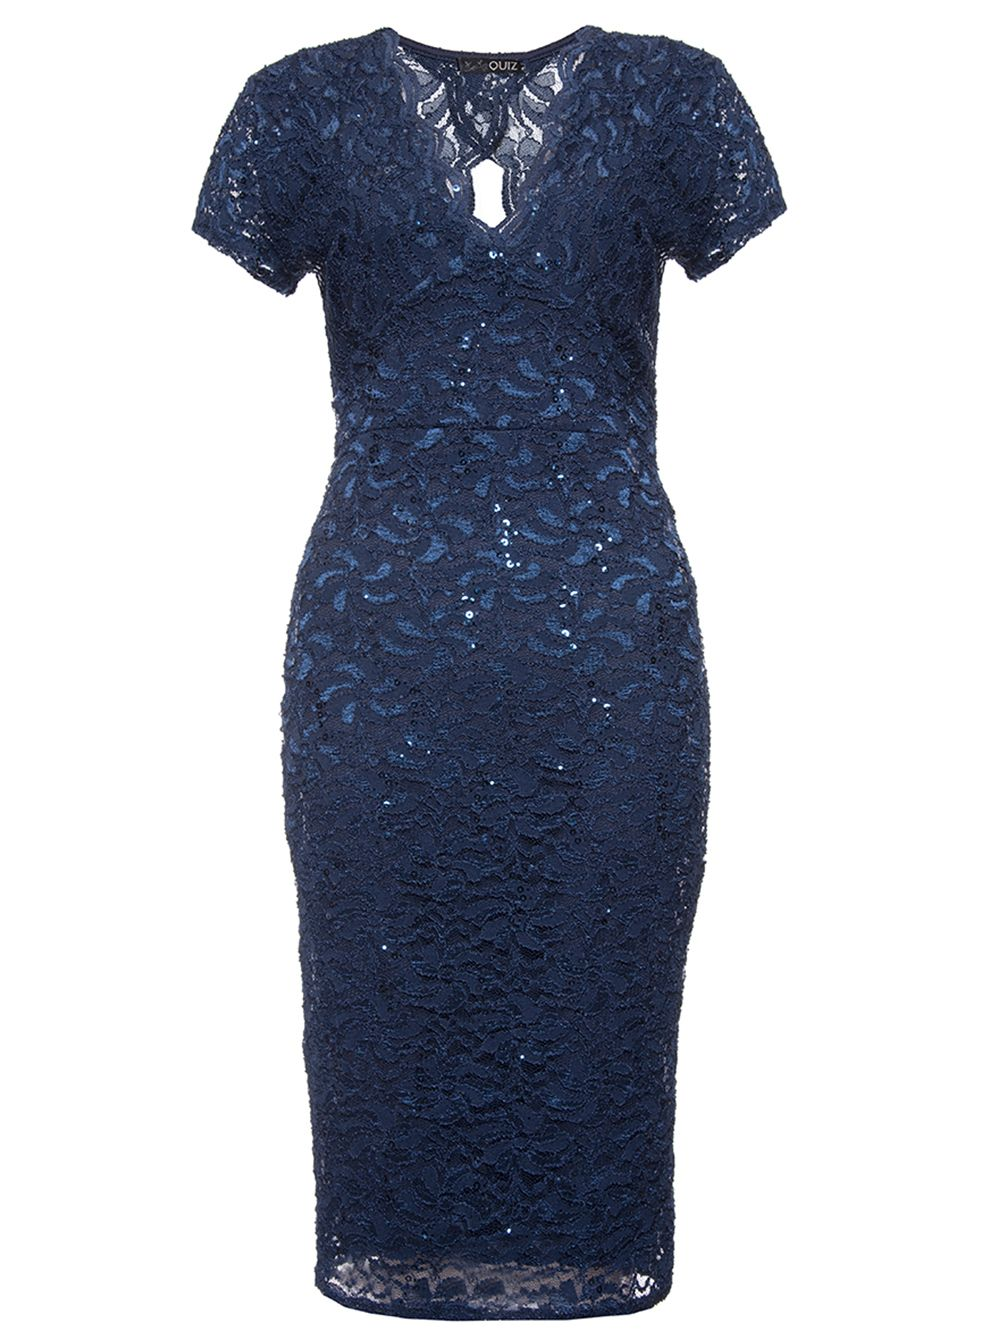 Quiz Navy Sequin Lace Cap Sleeve Midi Dress, Blue